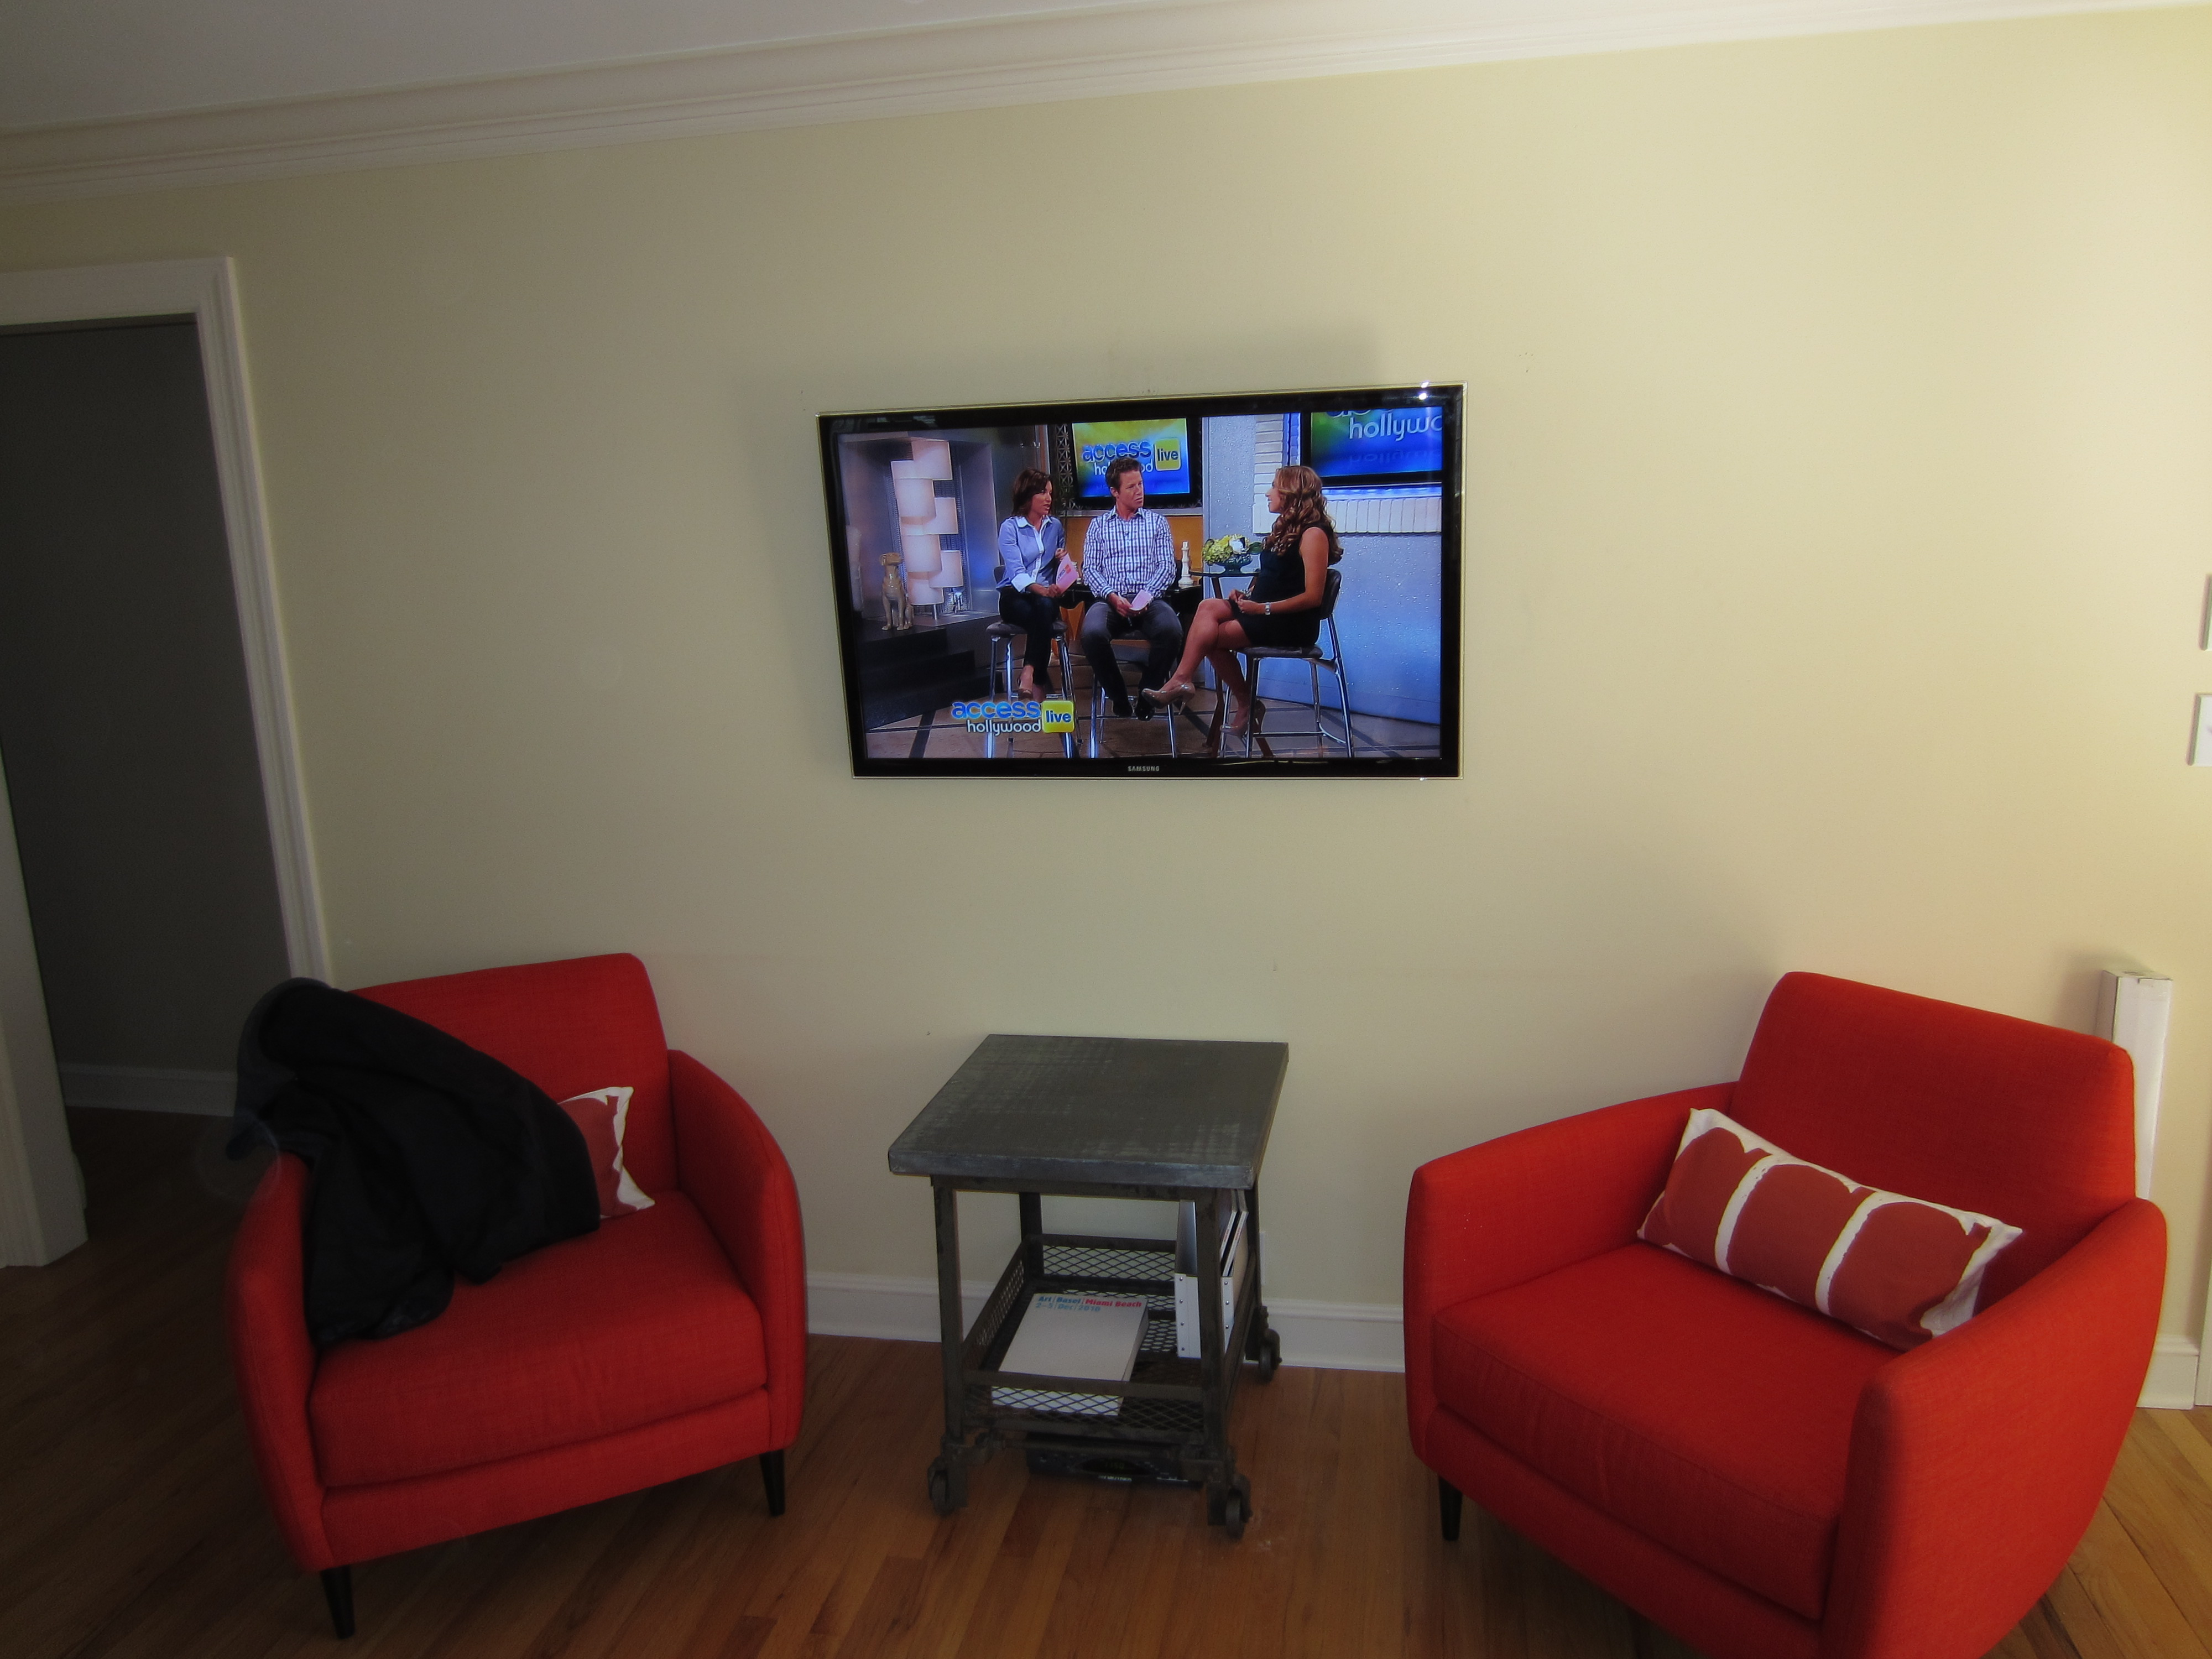 fairfield-ct-tv-install-on-wall-hiding-all-wires-1